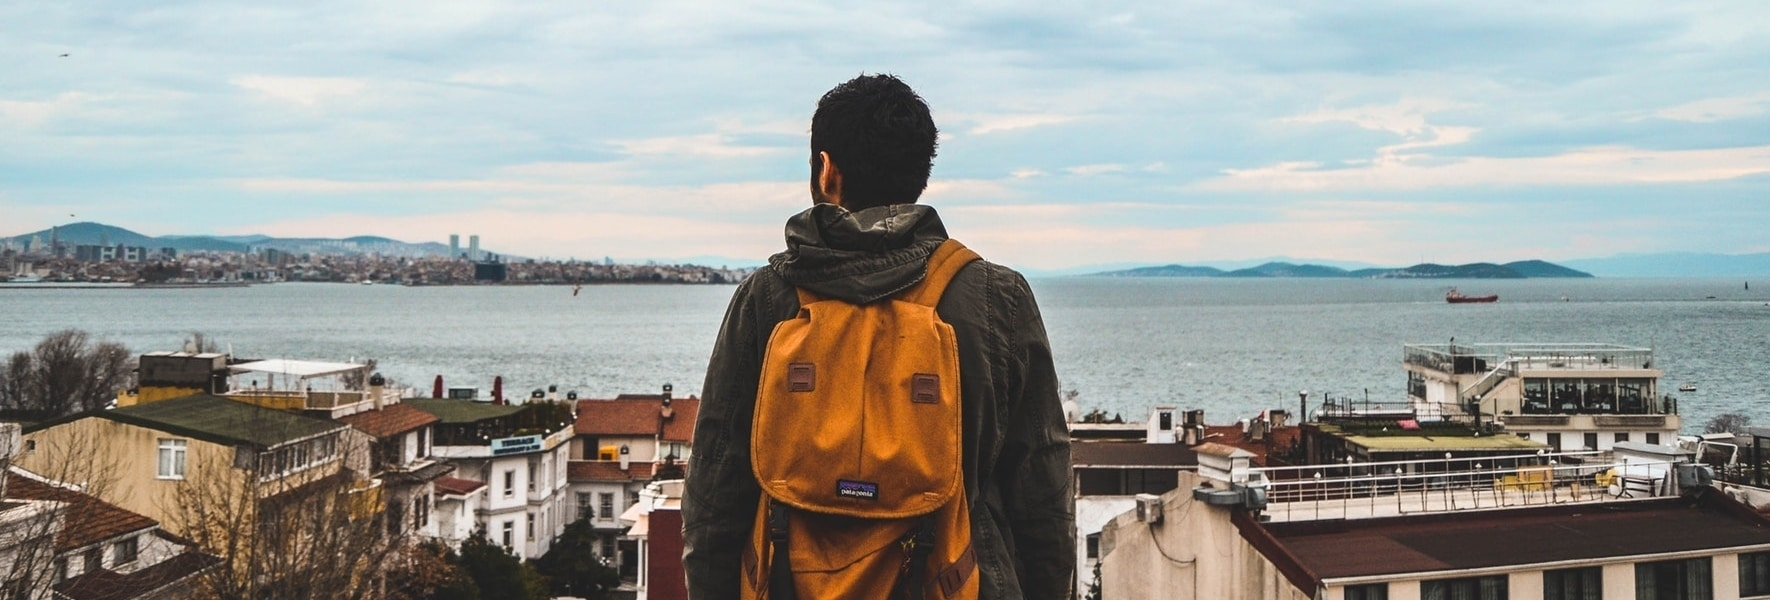 How to Make Friends while Traveling Solo like a Badass